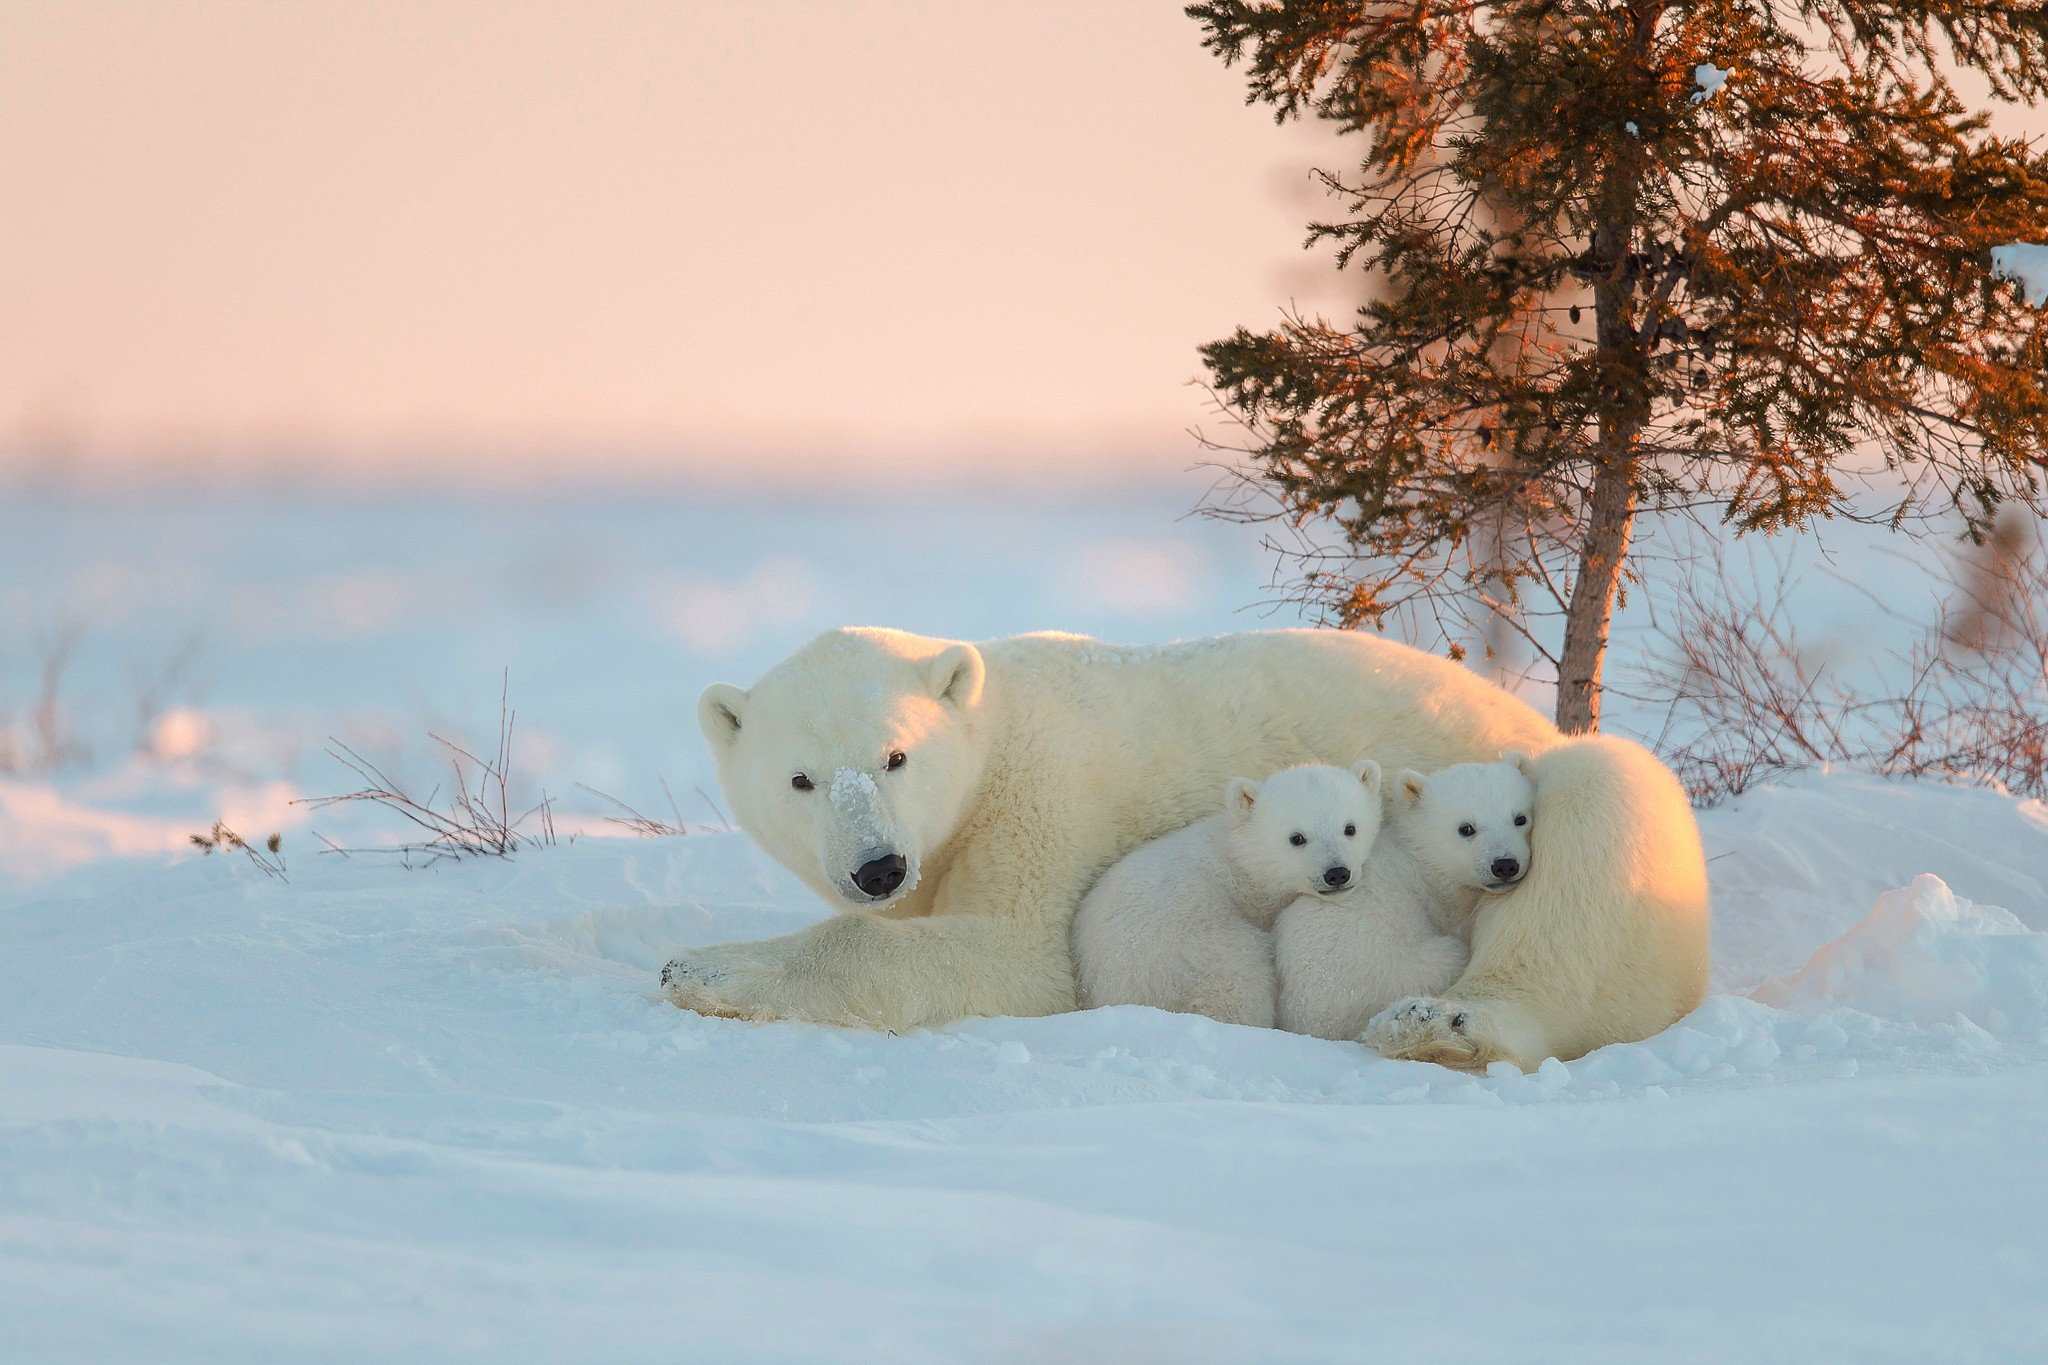 Cute Indian Baby Images For Wallpaper Polar Bear With Baby Hd Animals 4k Wallpapers Images